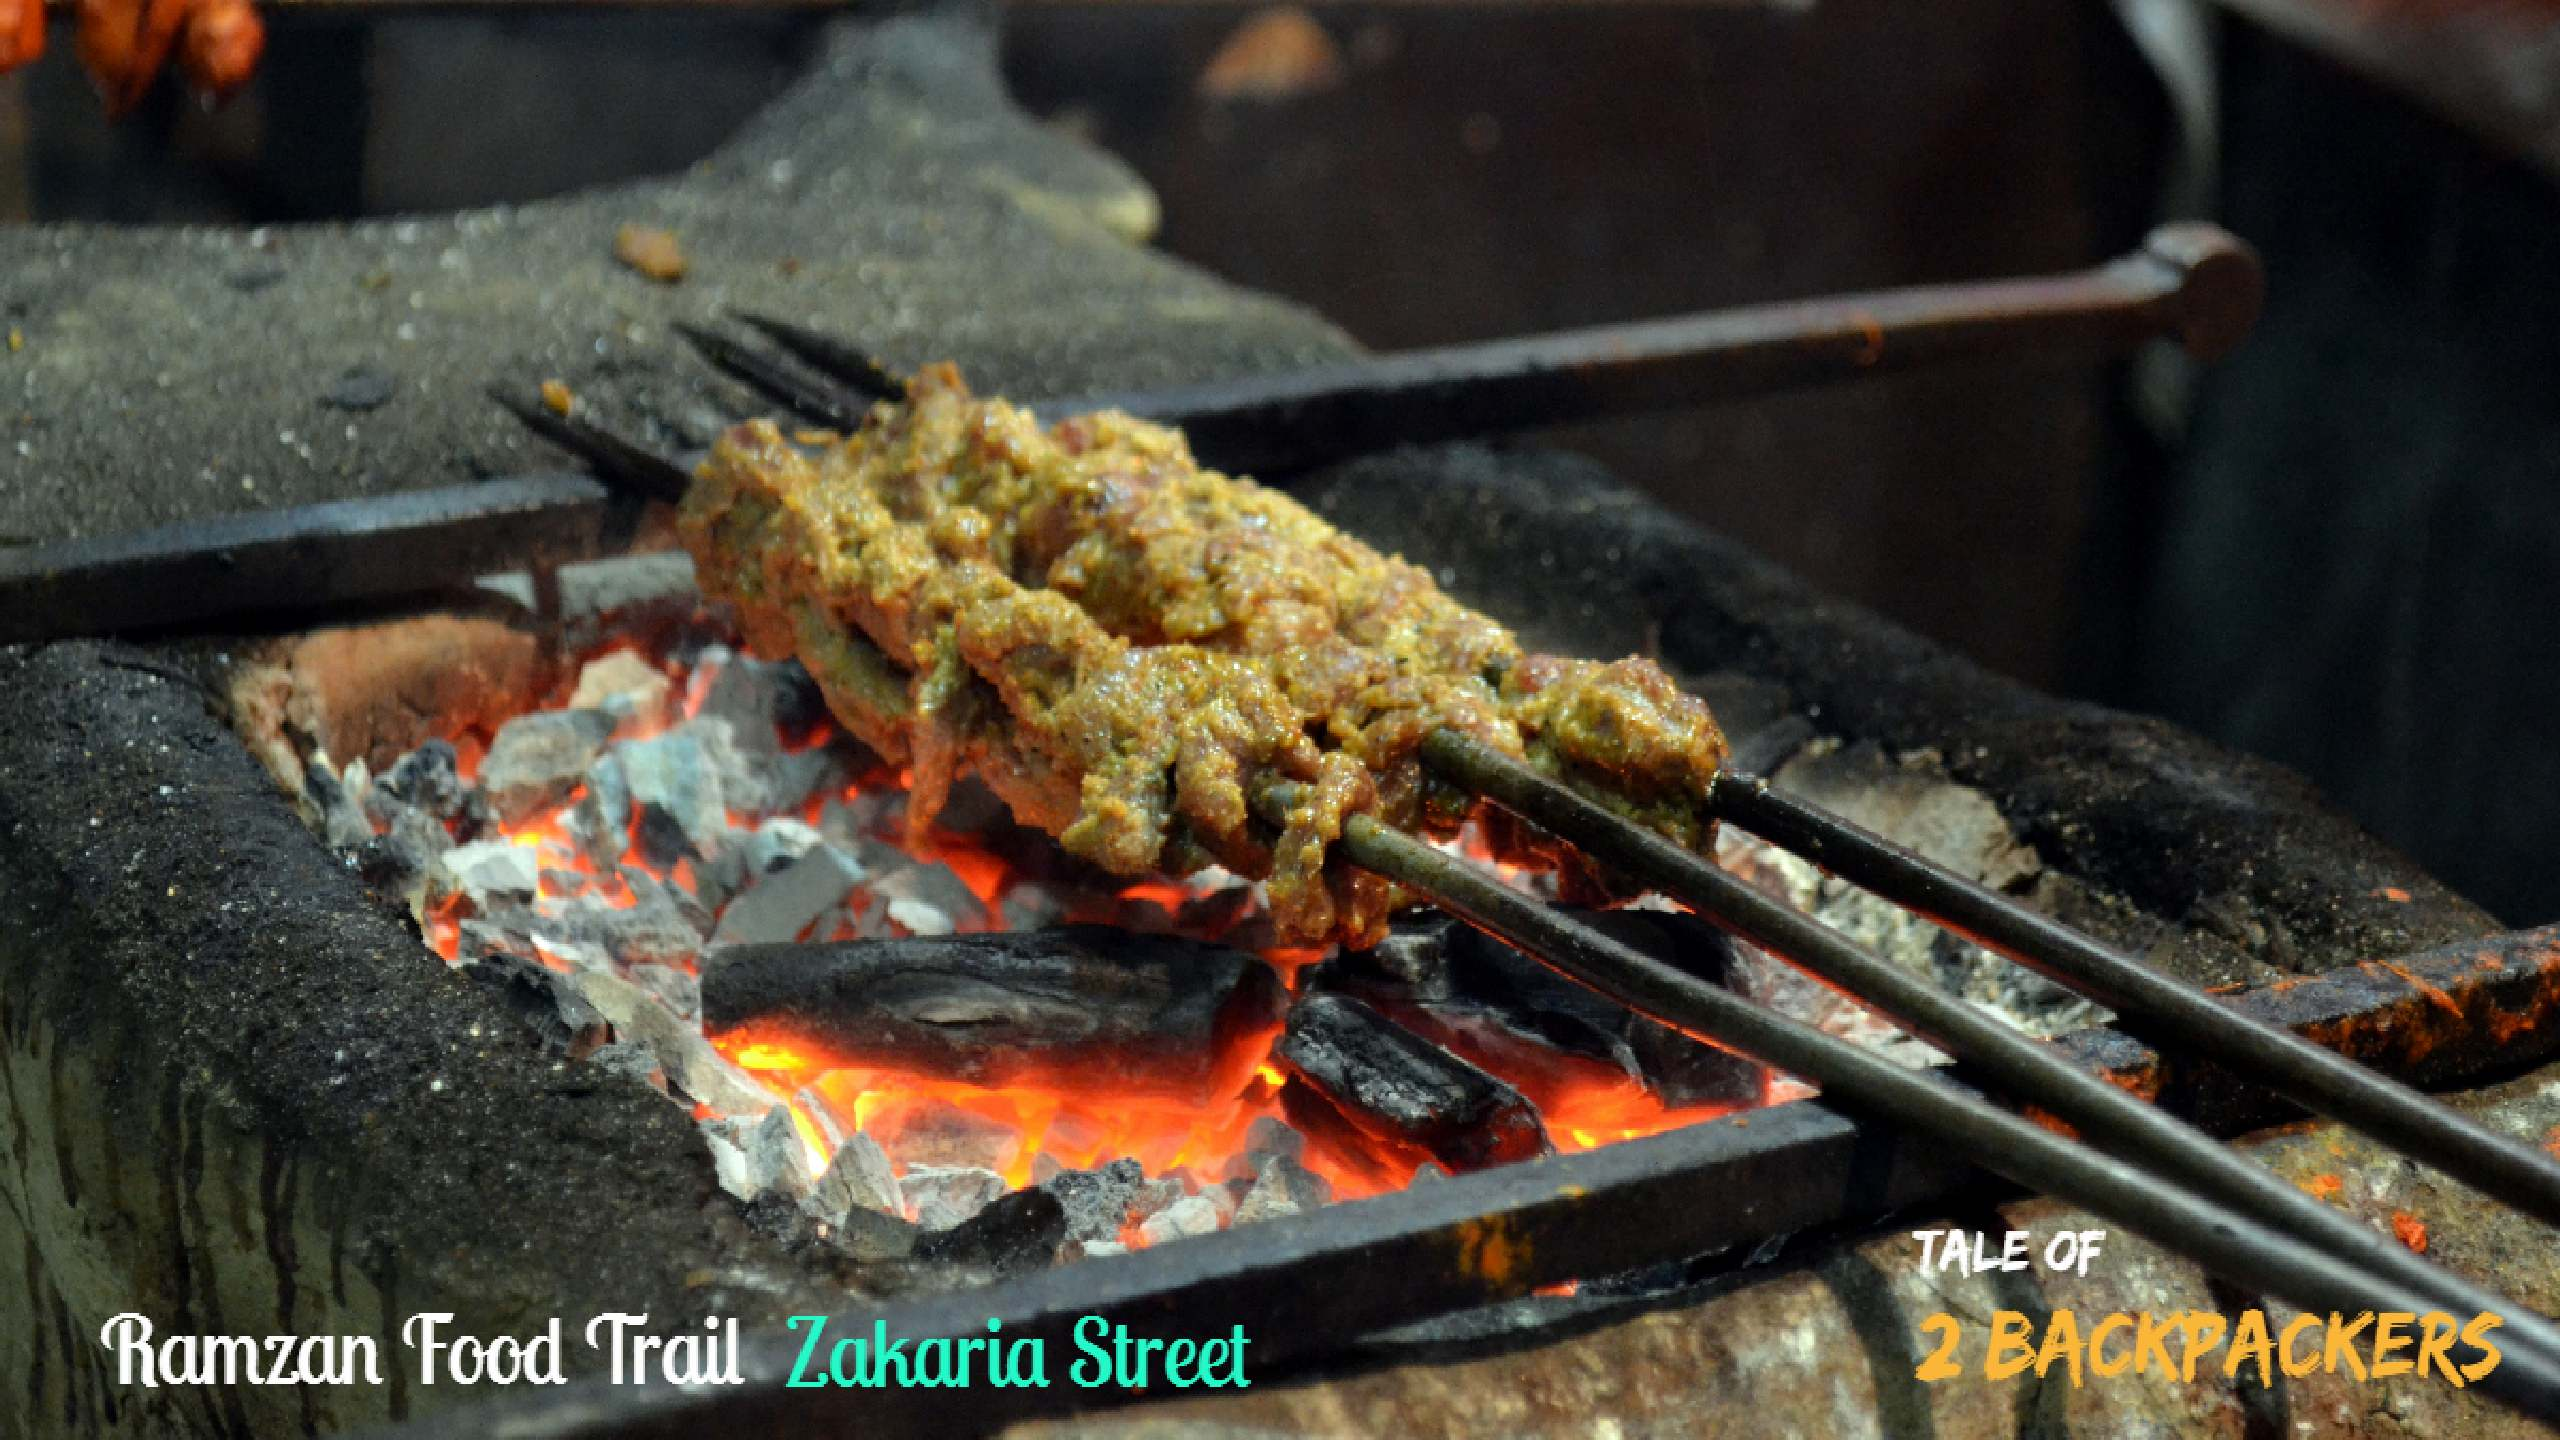 Ramzan Food Trail